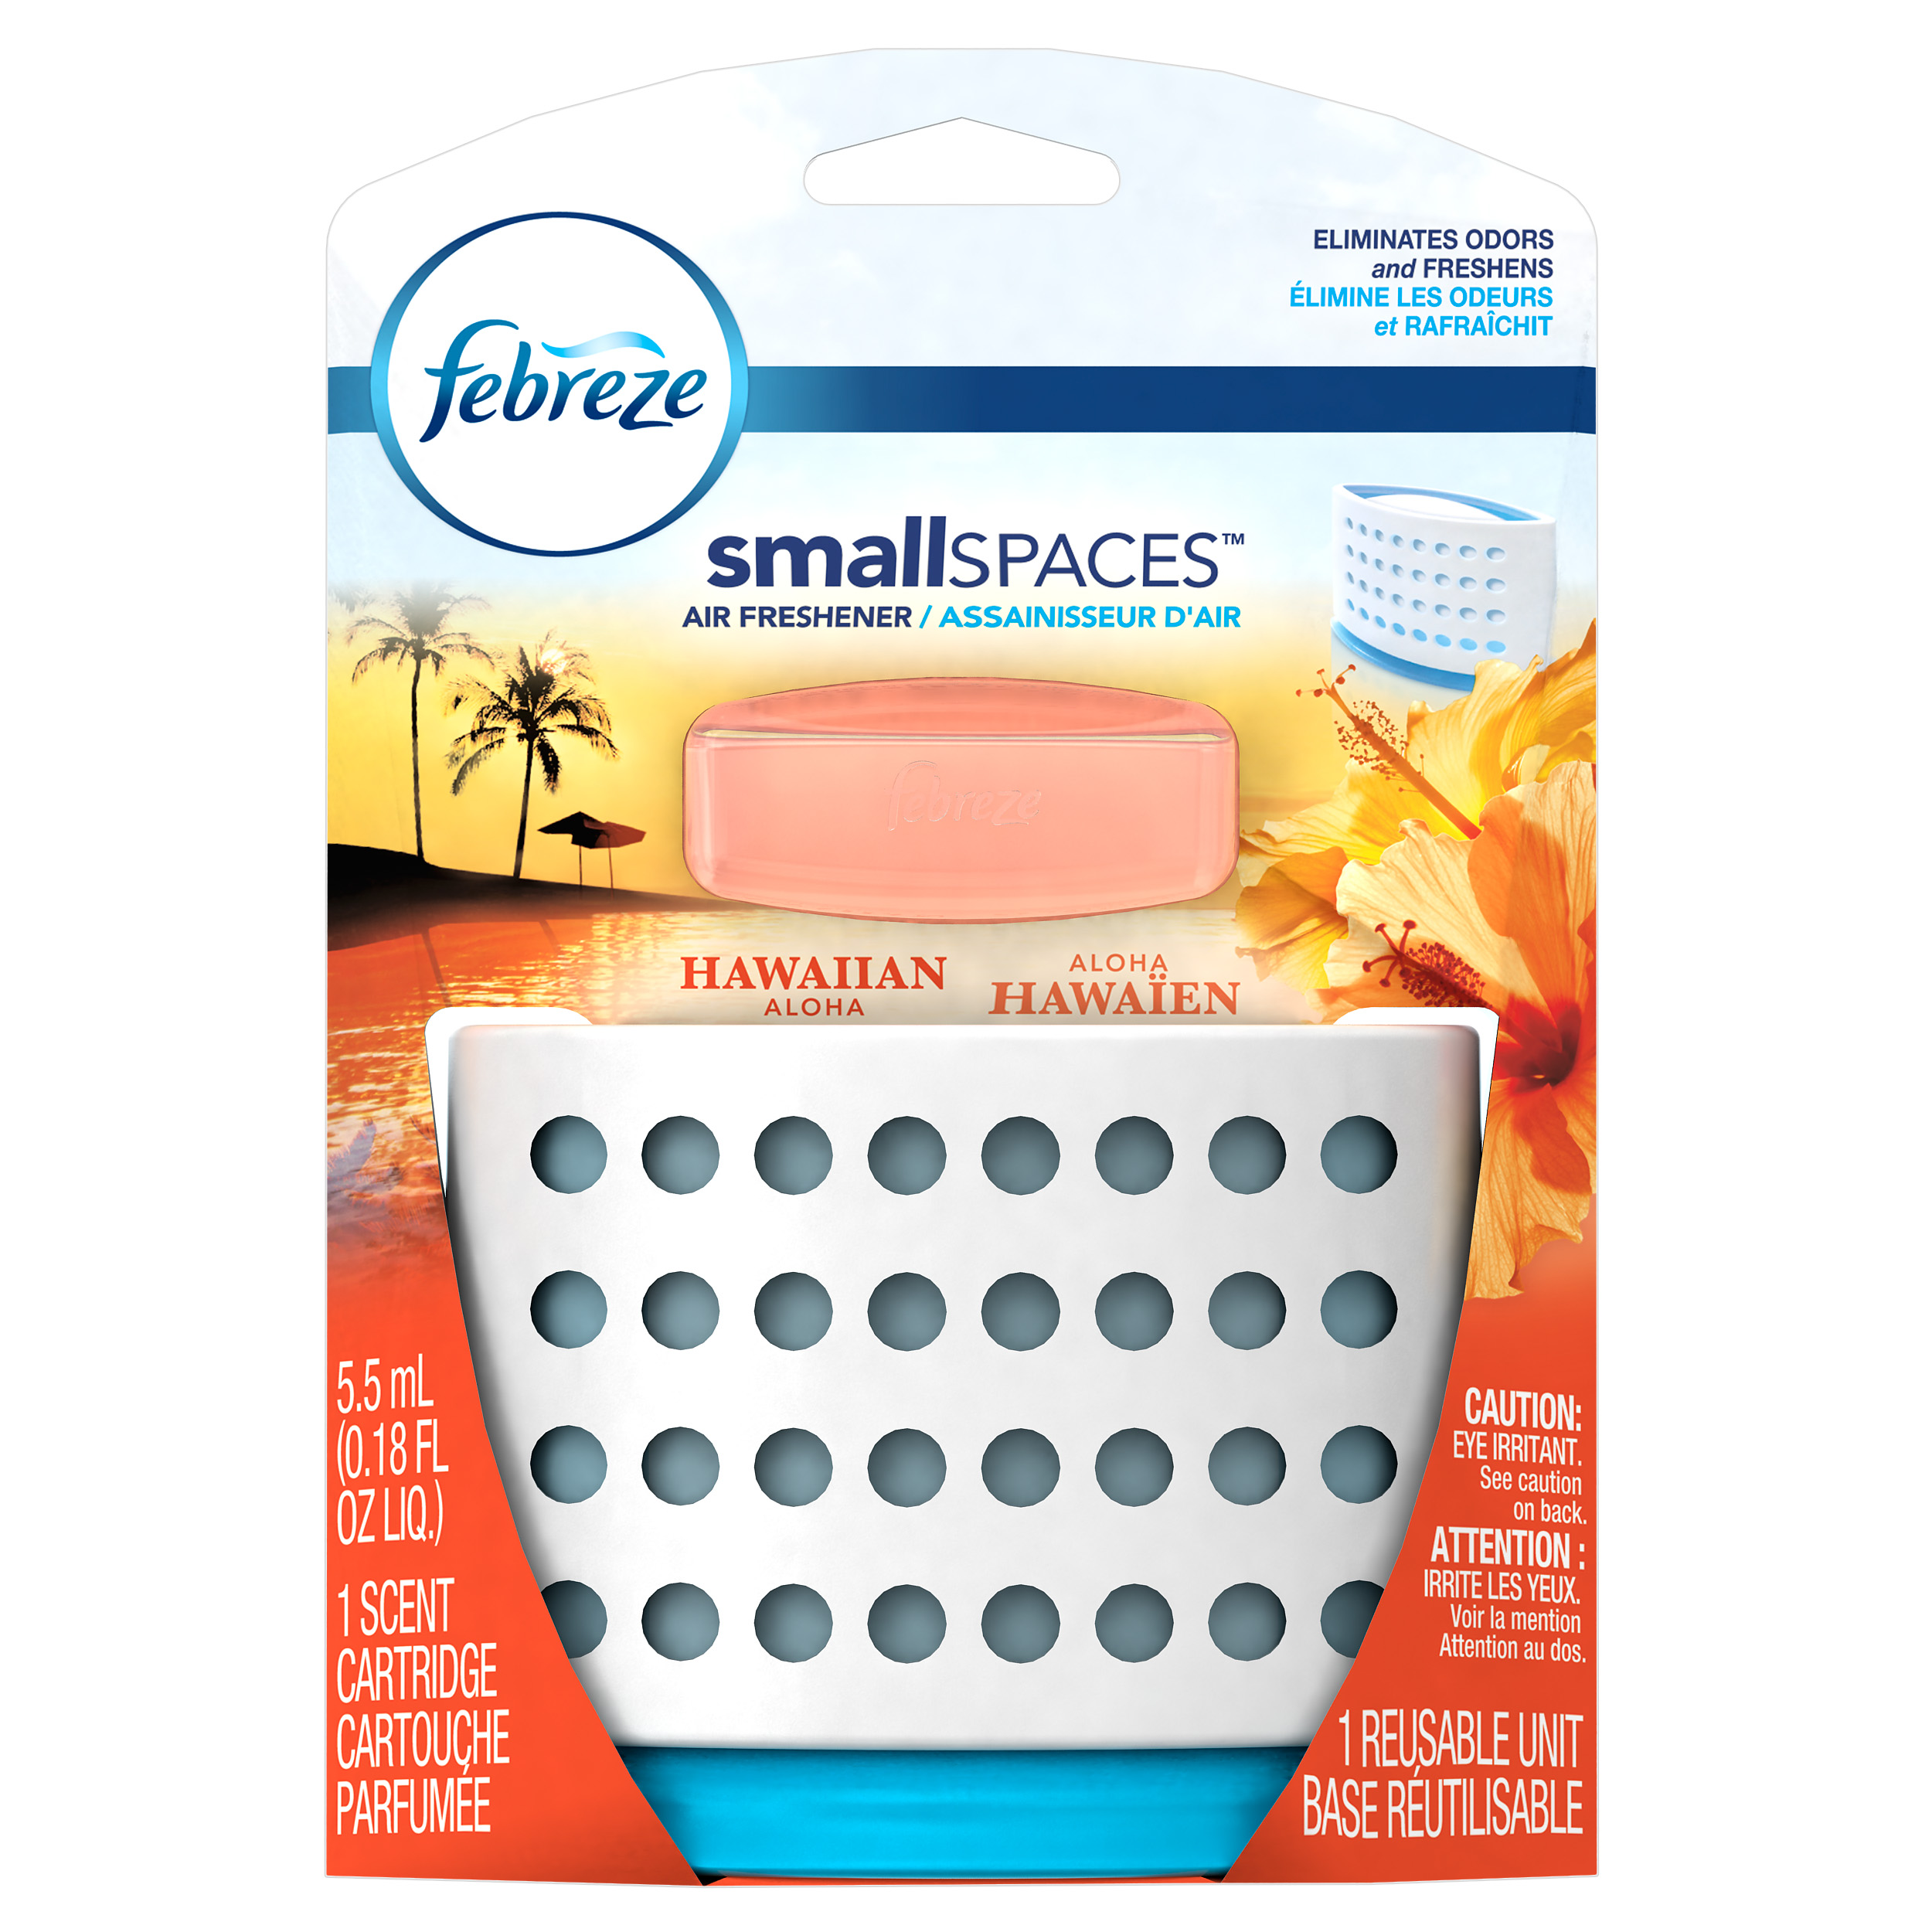 Febreze SmallSpaces Hawaiian Aloha Starter Kit Air Freshener, 1 Count, 5.5 ml